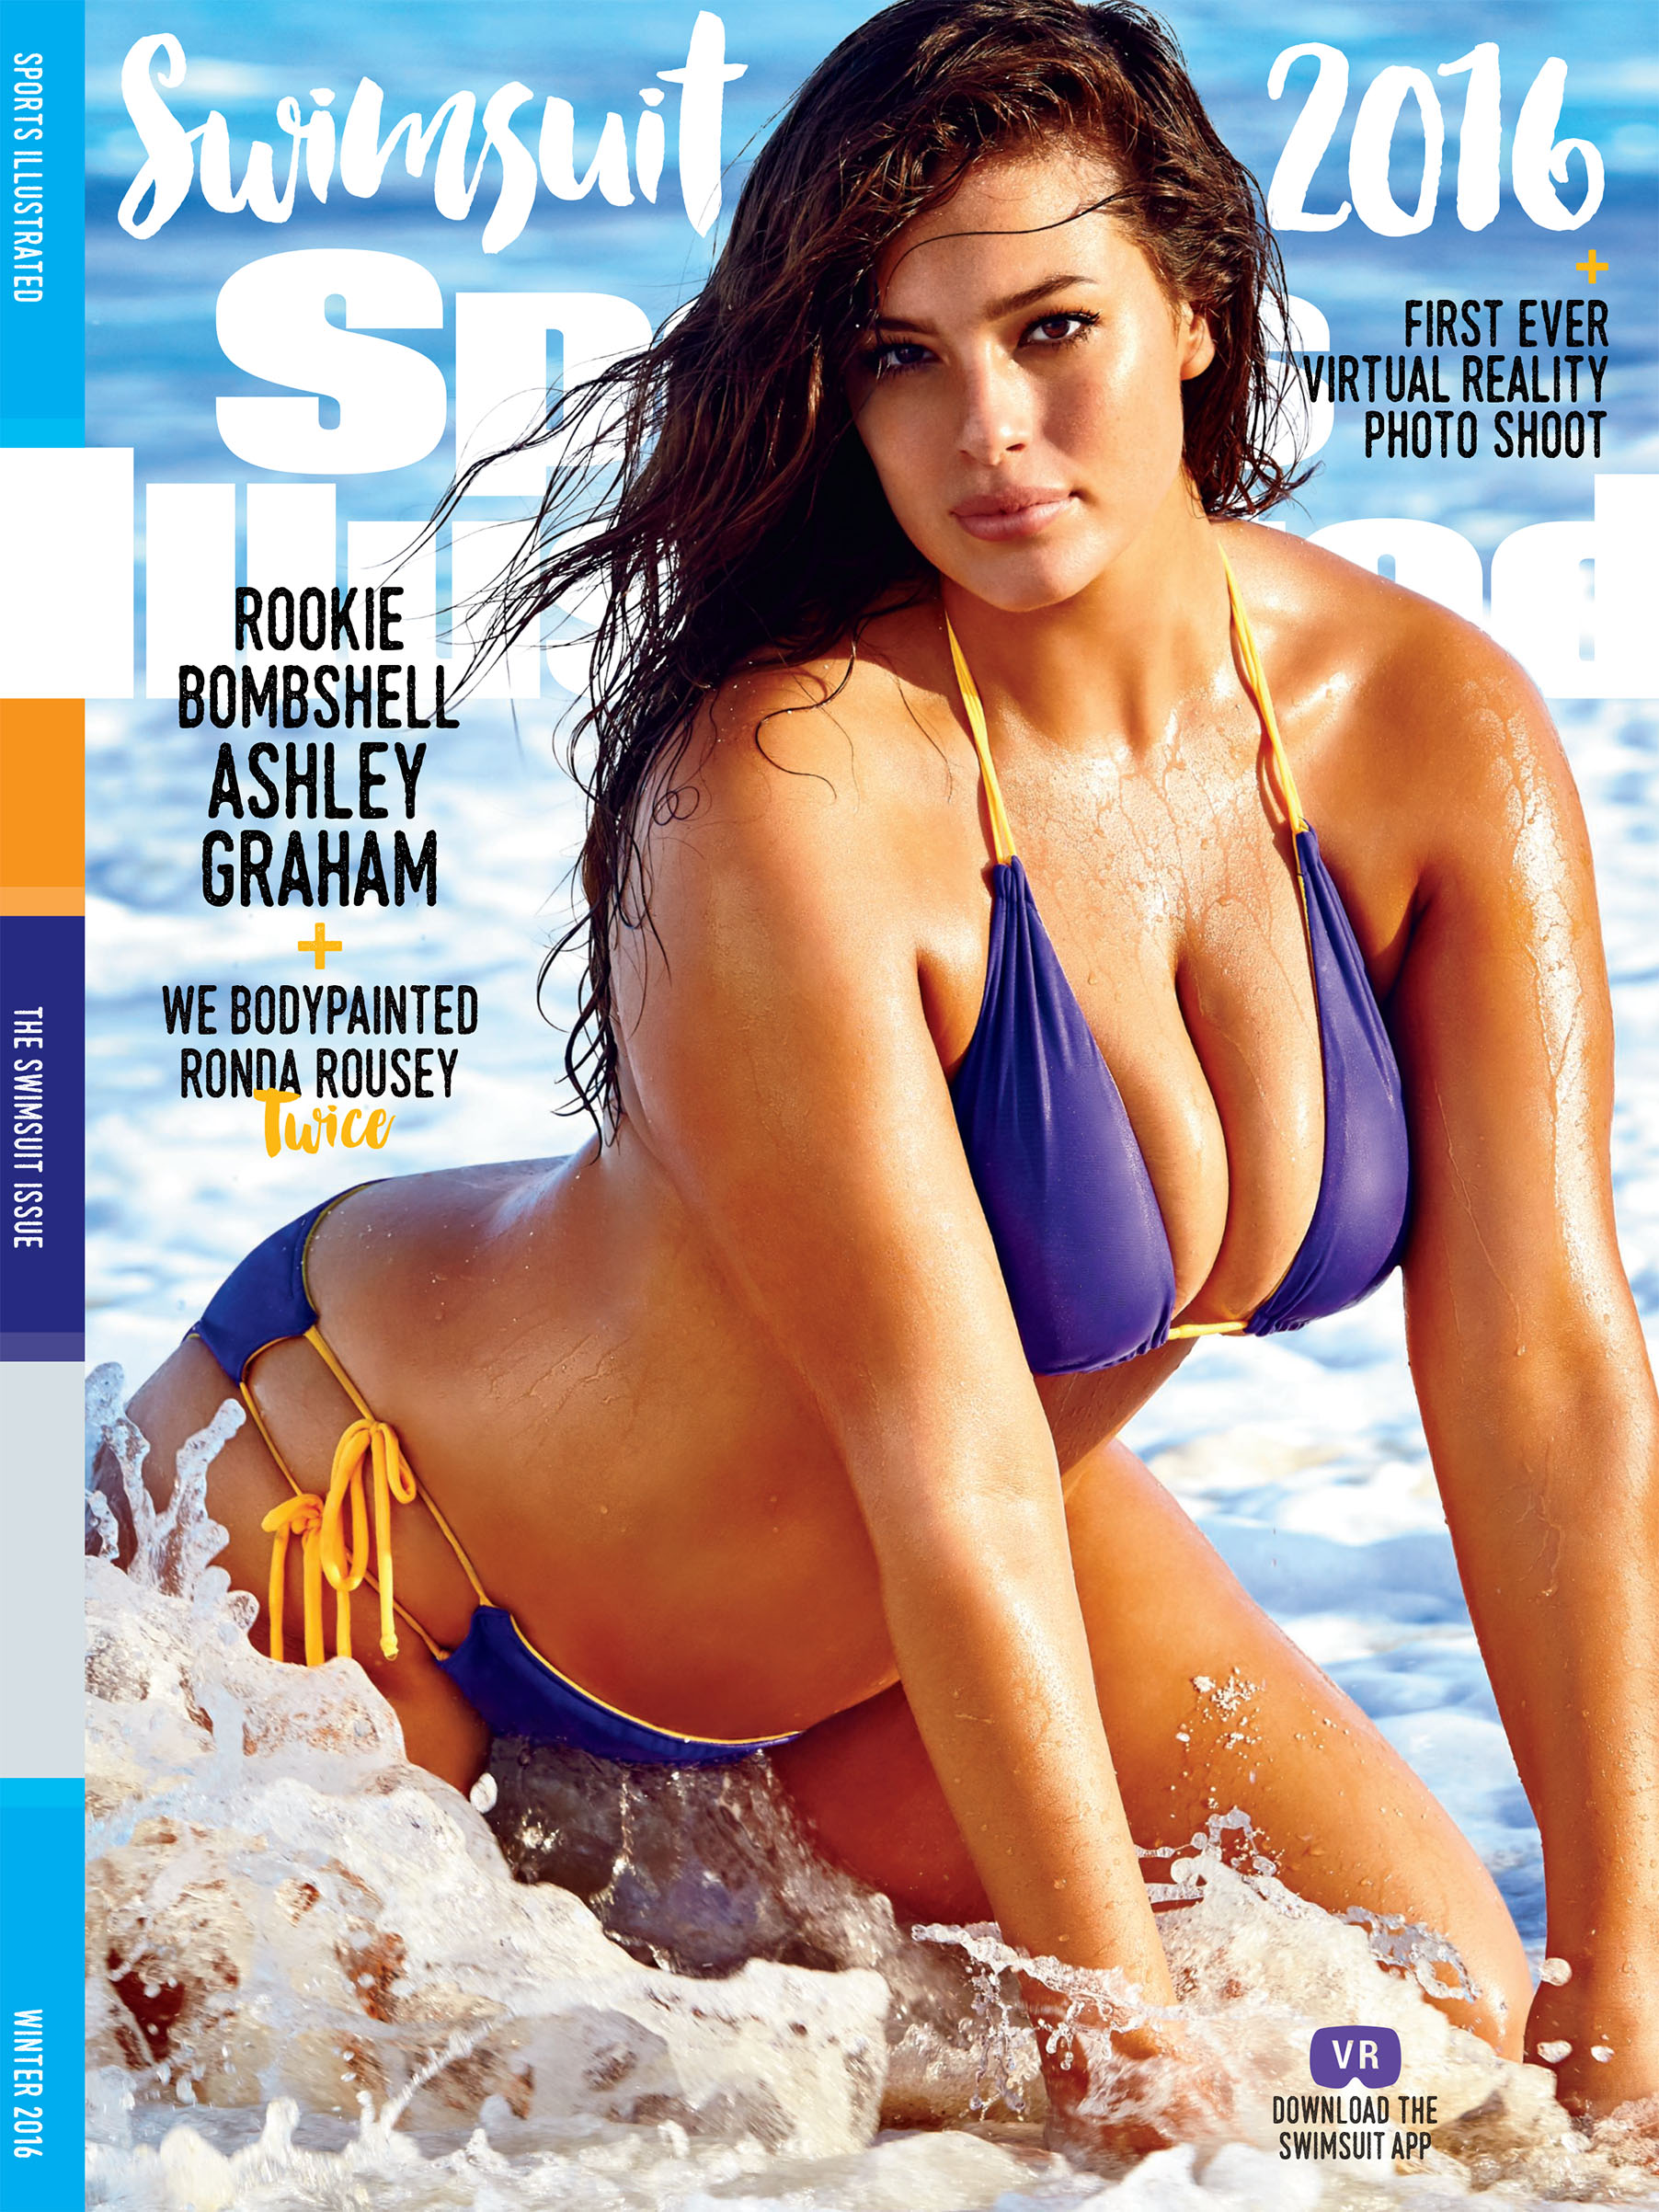 Model Ashley Graham on the cover of the Sports Illustrated Swimsuit issue in 2016.